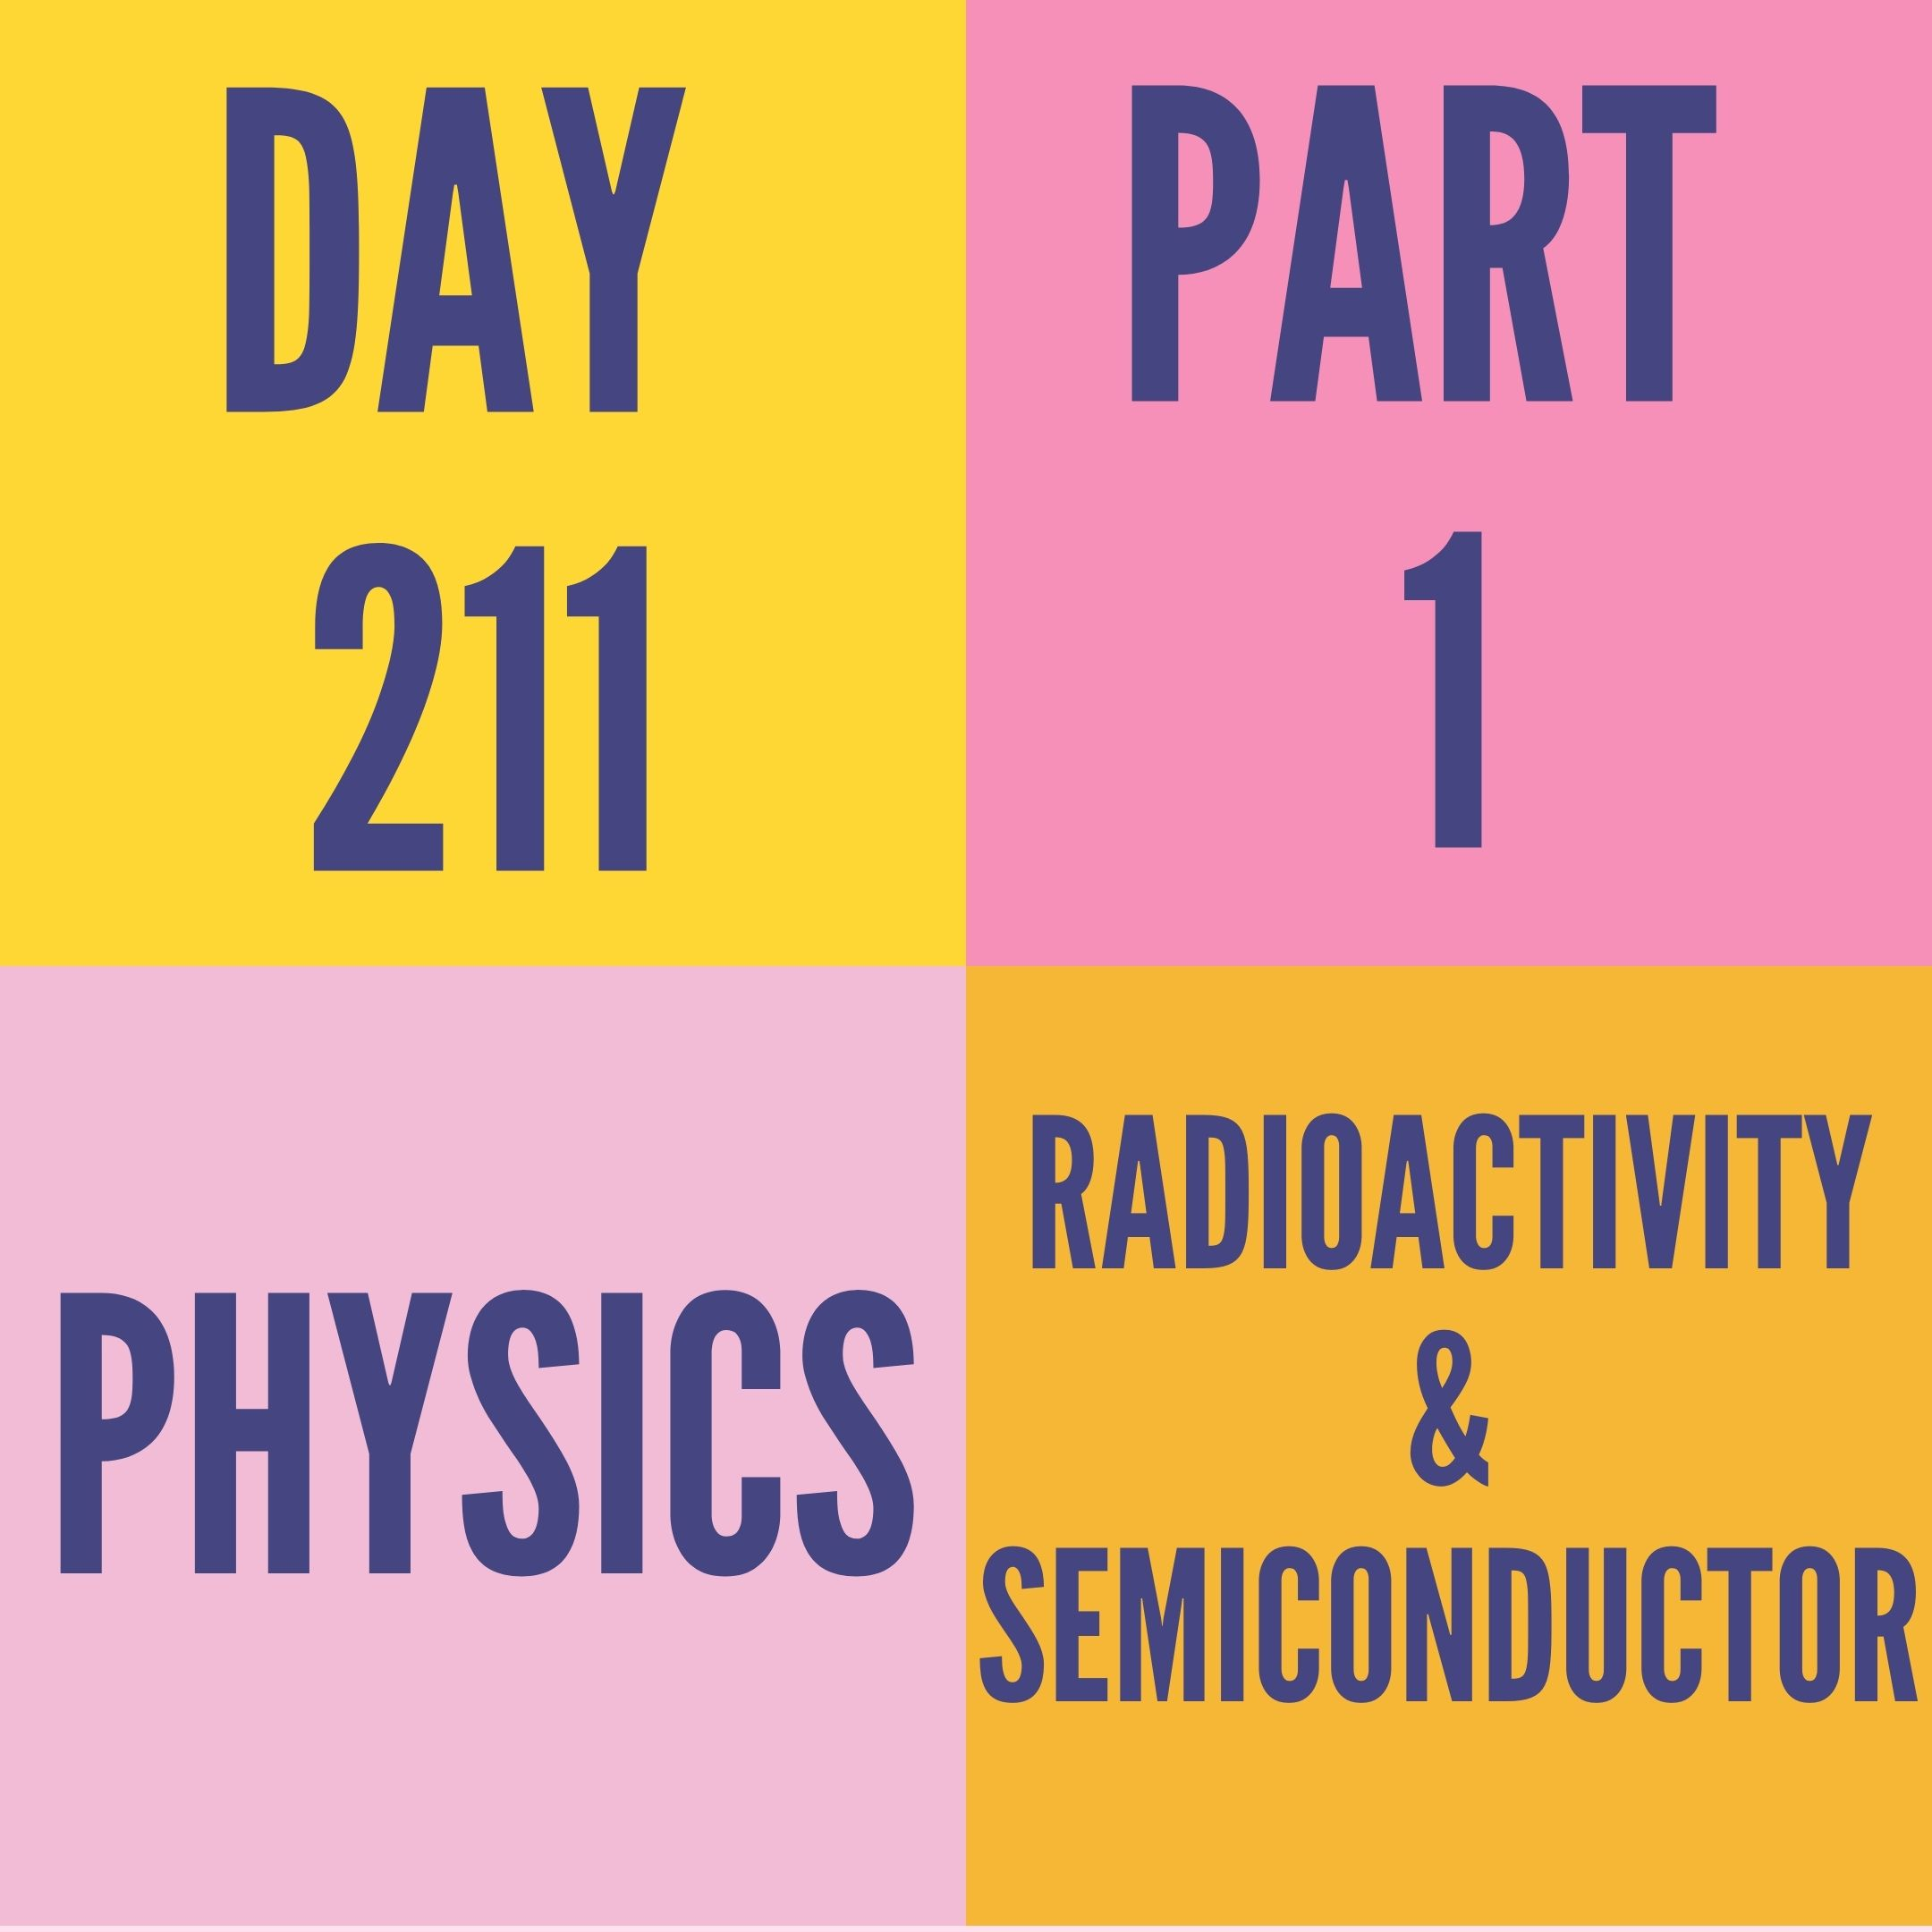 DAY-211 PART-1 RADIOACTIVITY AND SEMICONDUCTOR